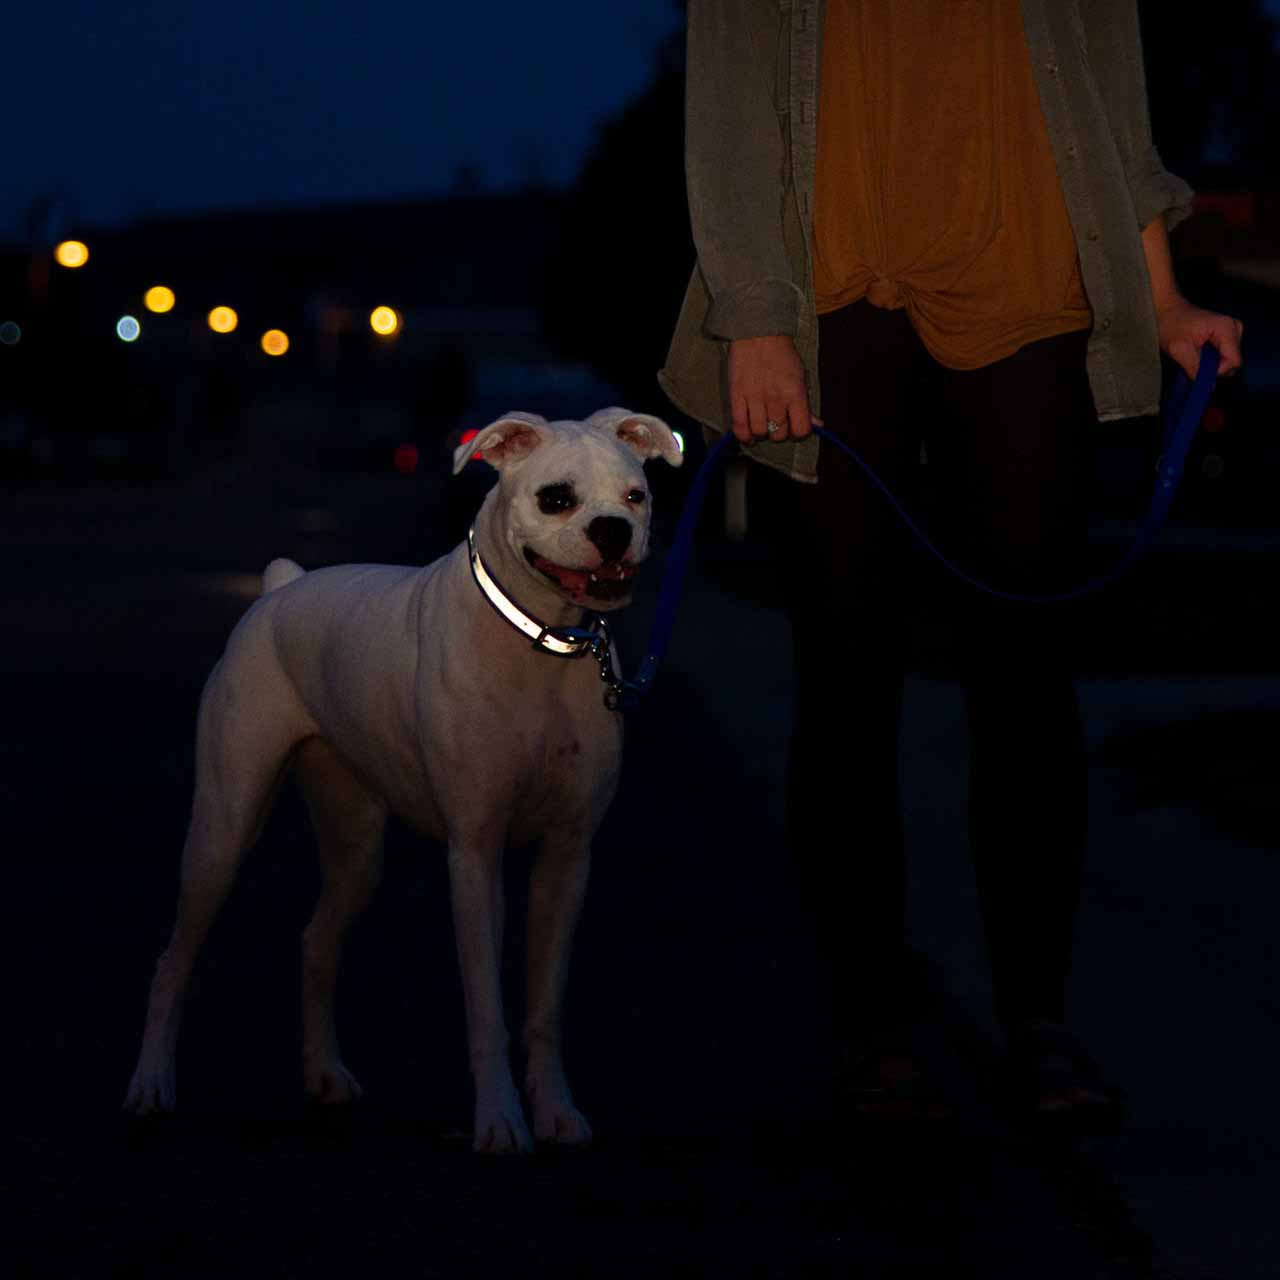 Waterproof Reflective Safety Dog Collar Night Use